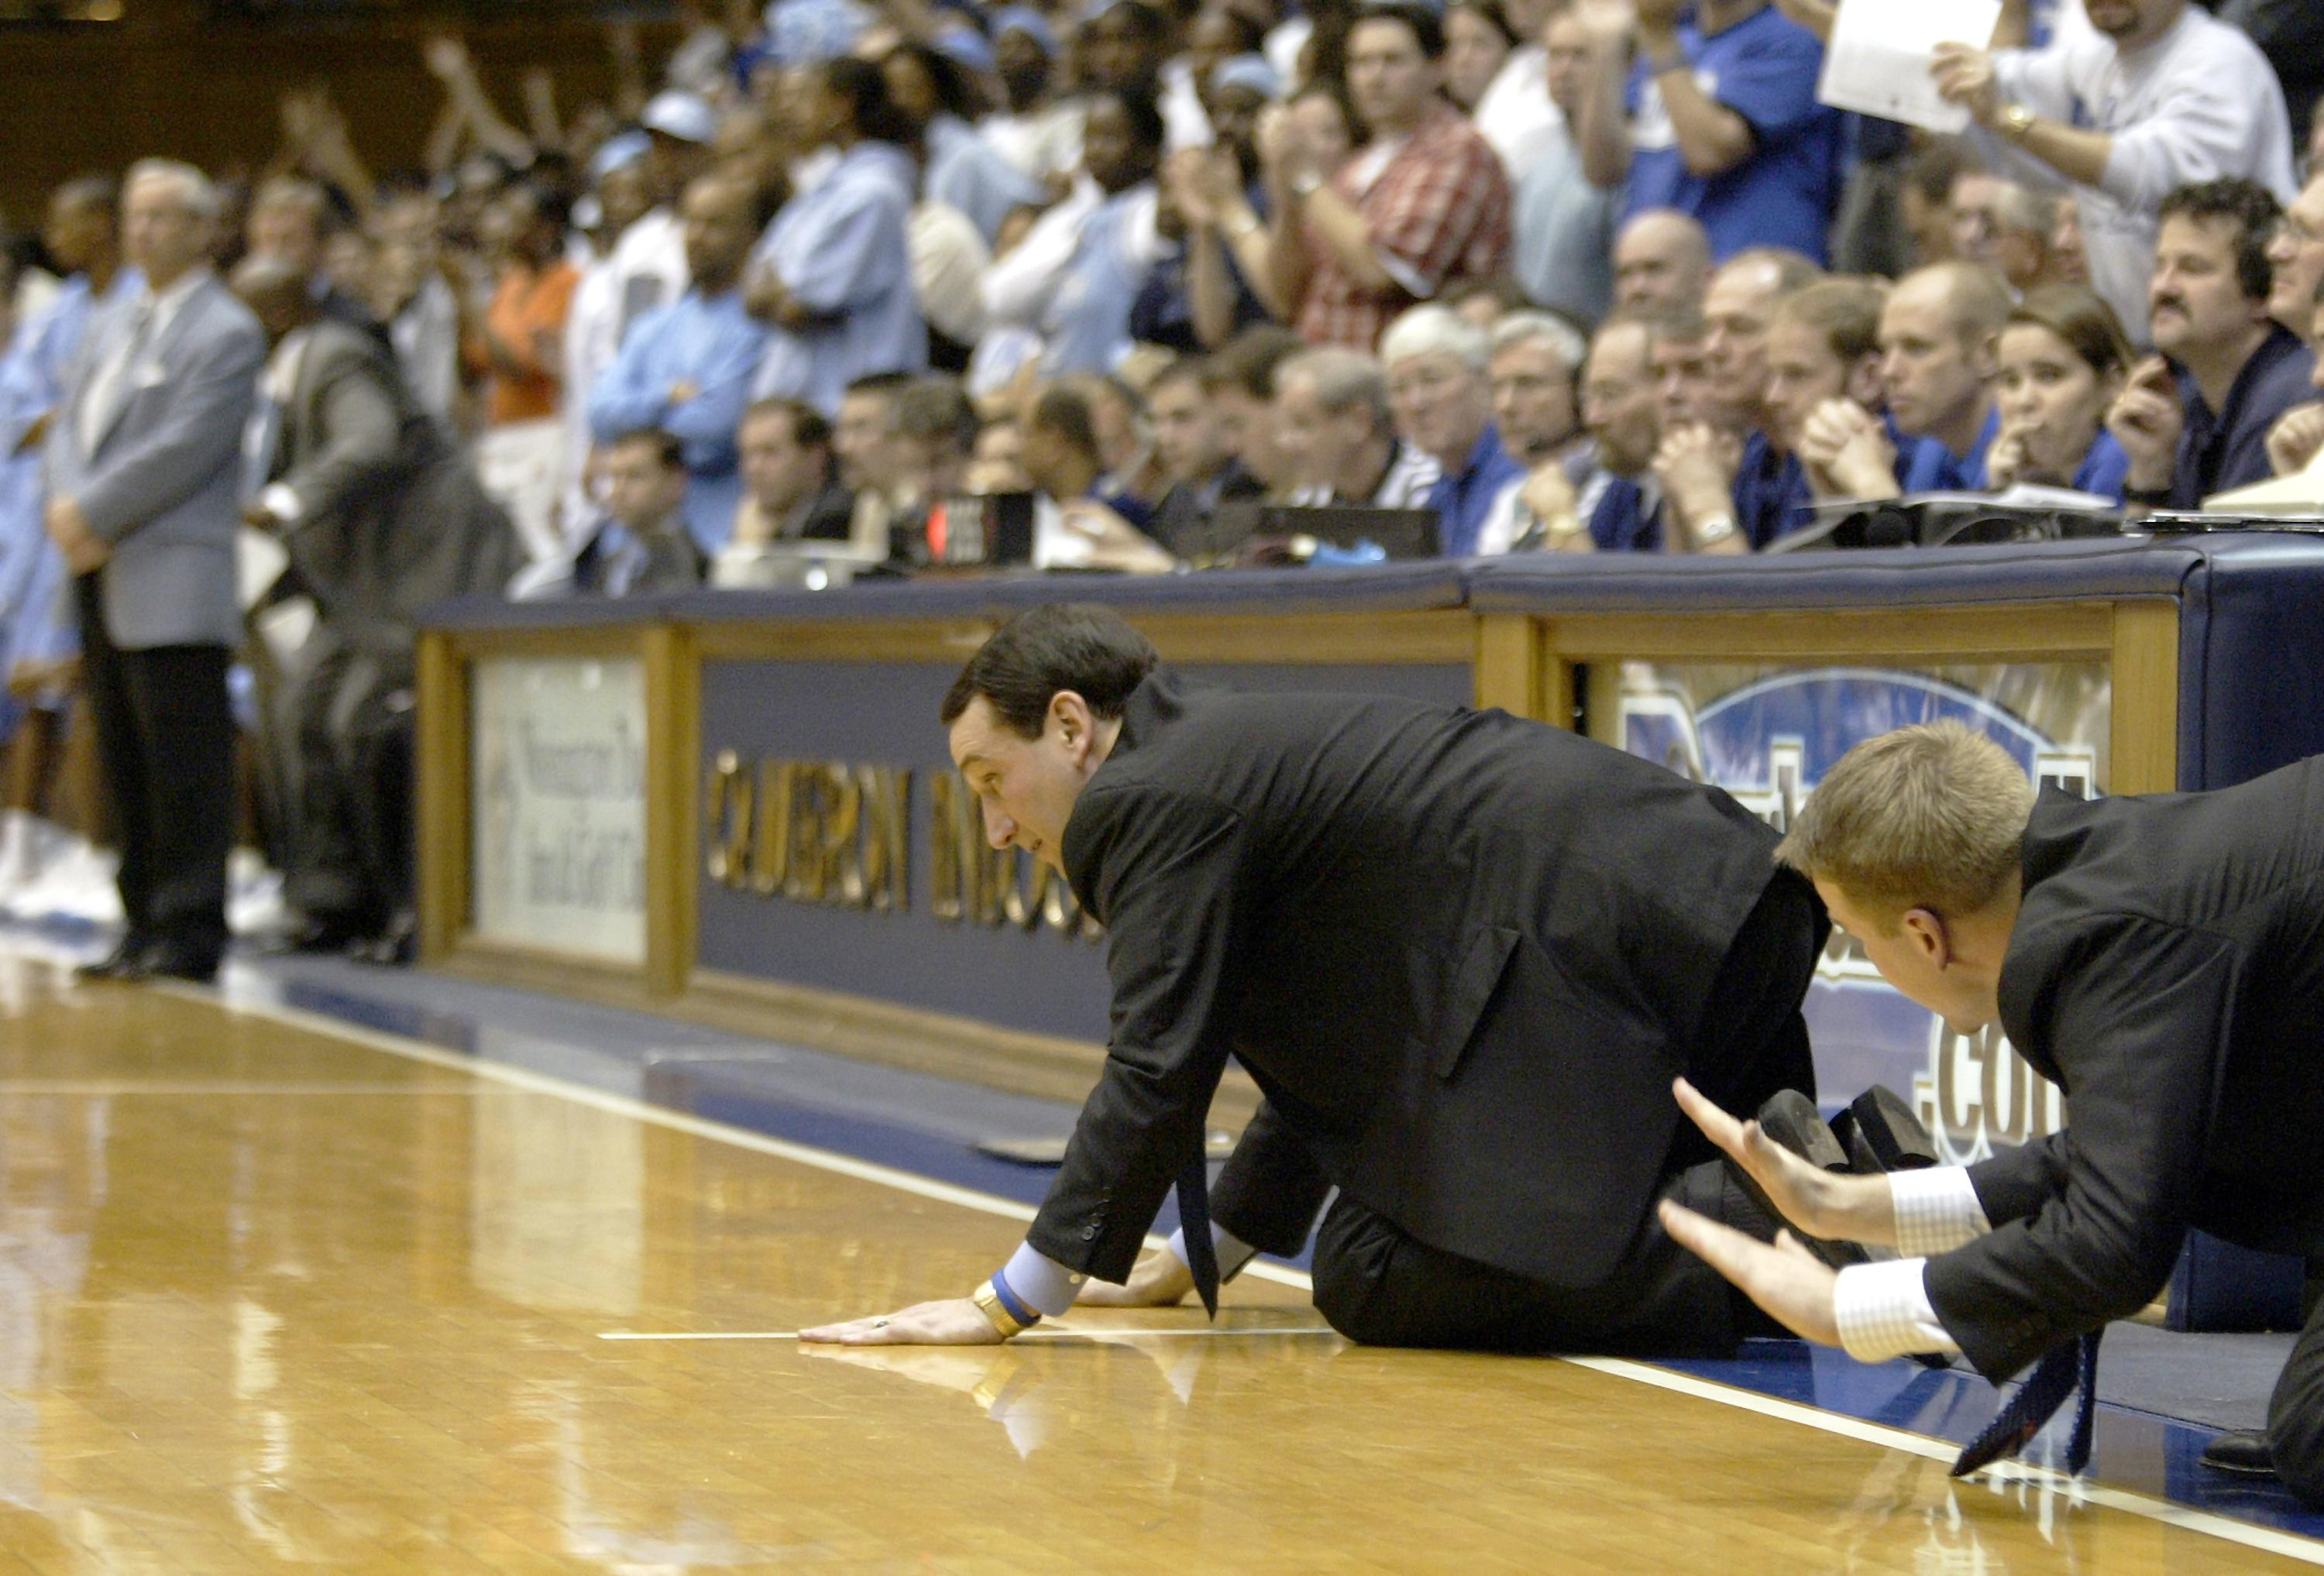 DURHAM, NC - FEBRUARY 9:  Head coach Mike Krzyzewski and assistant coach Steve Wojciechowski (R) of the Duke Blue Devils slap the floor to signal defense during their game against the North Carolina Tar Heels at Cameron Indoor Stadium on February 9, 2005 in Durham, North Carolina. Duke defeated North Carolina 71-70.  (Photo by Craig Jones/Getty Images)